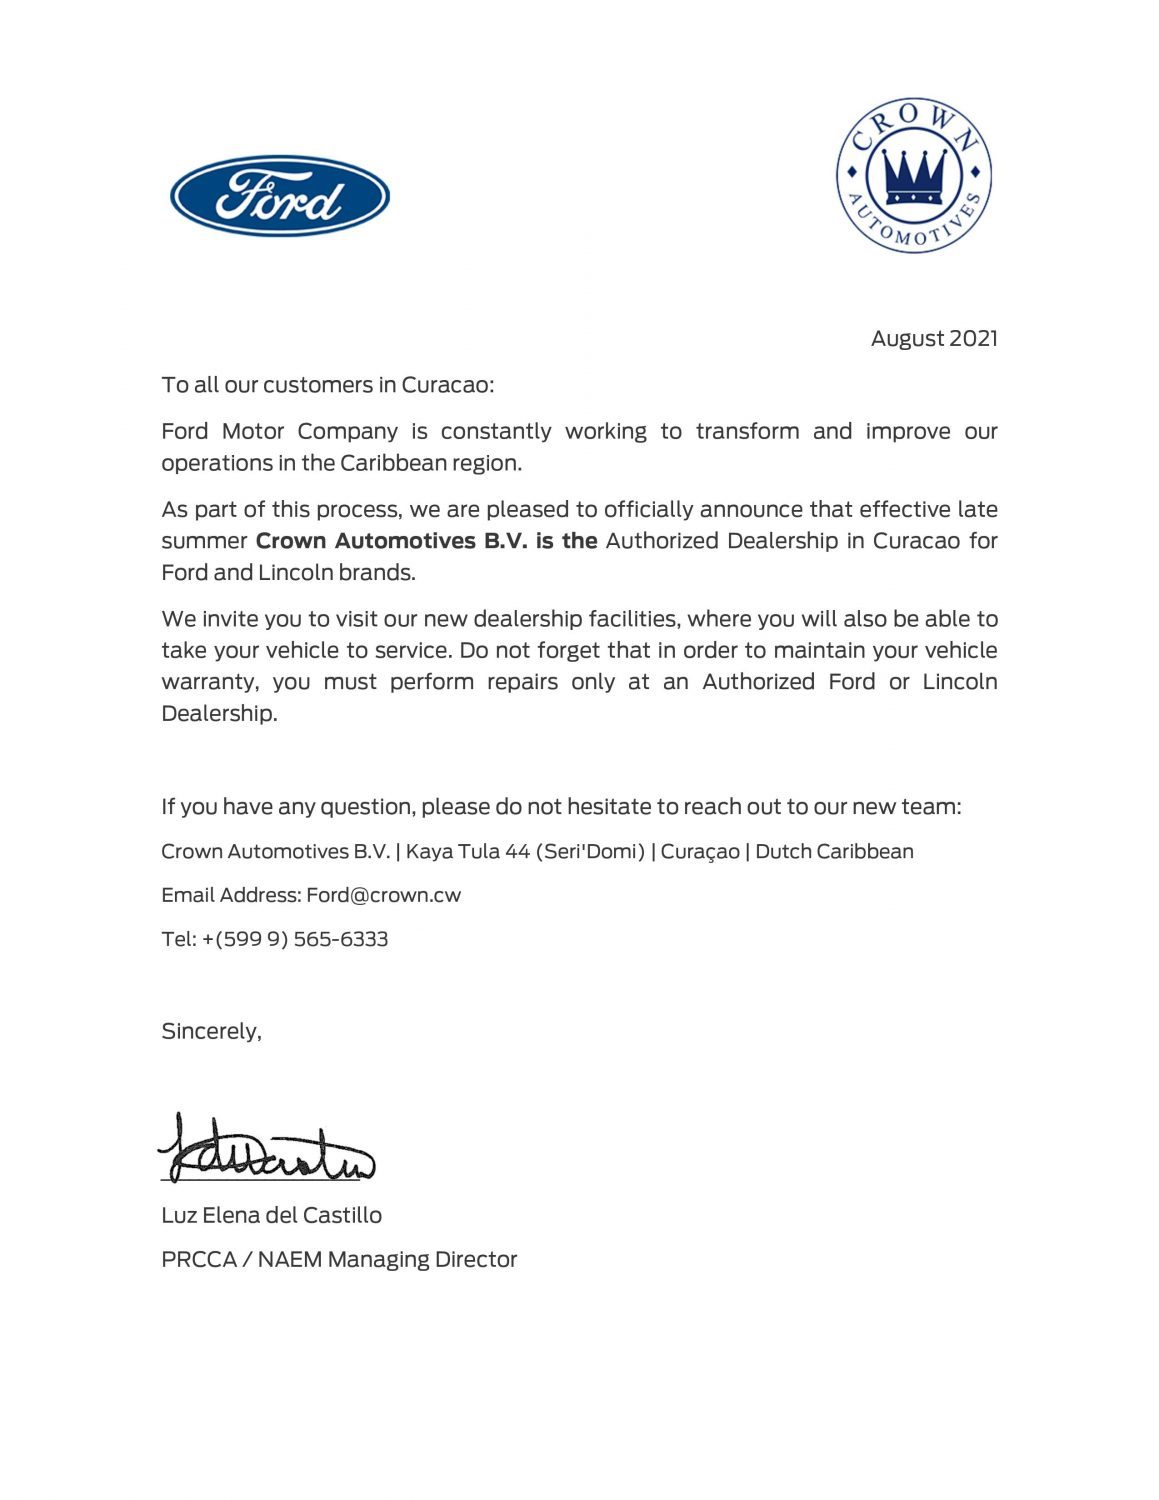 Ford Curacao Announcement